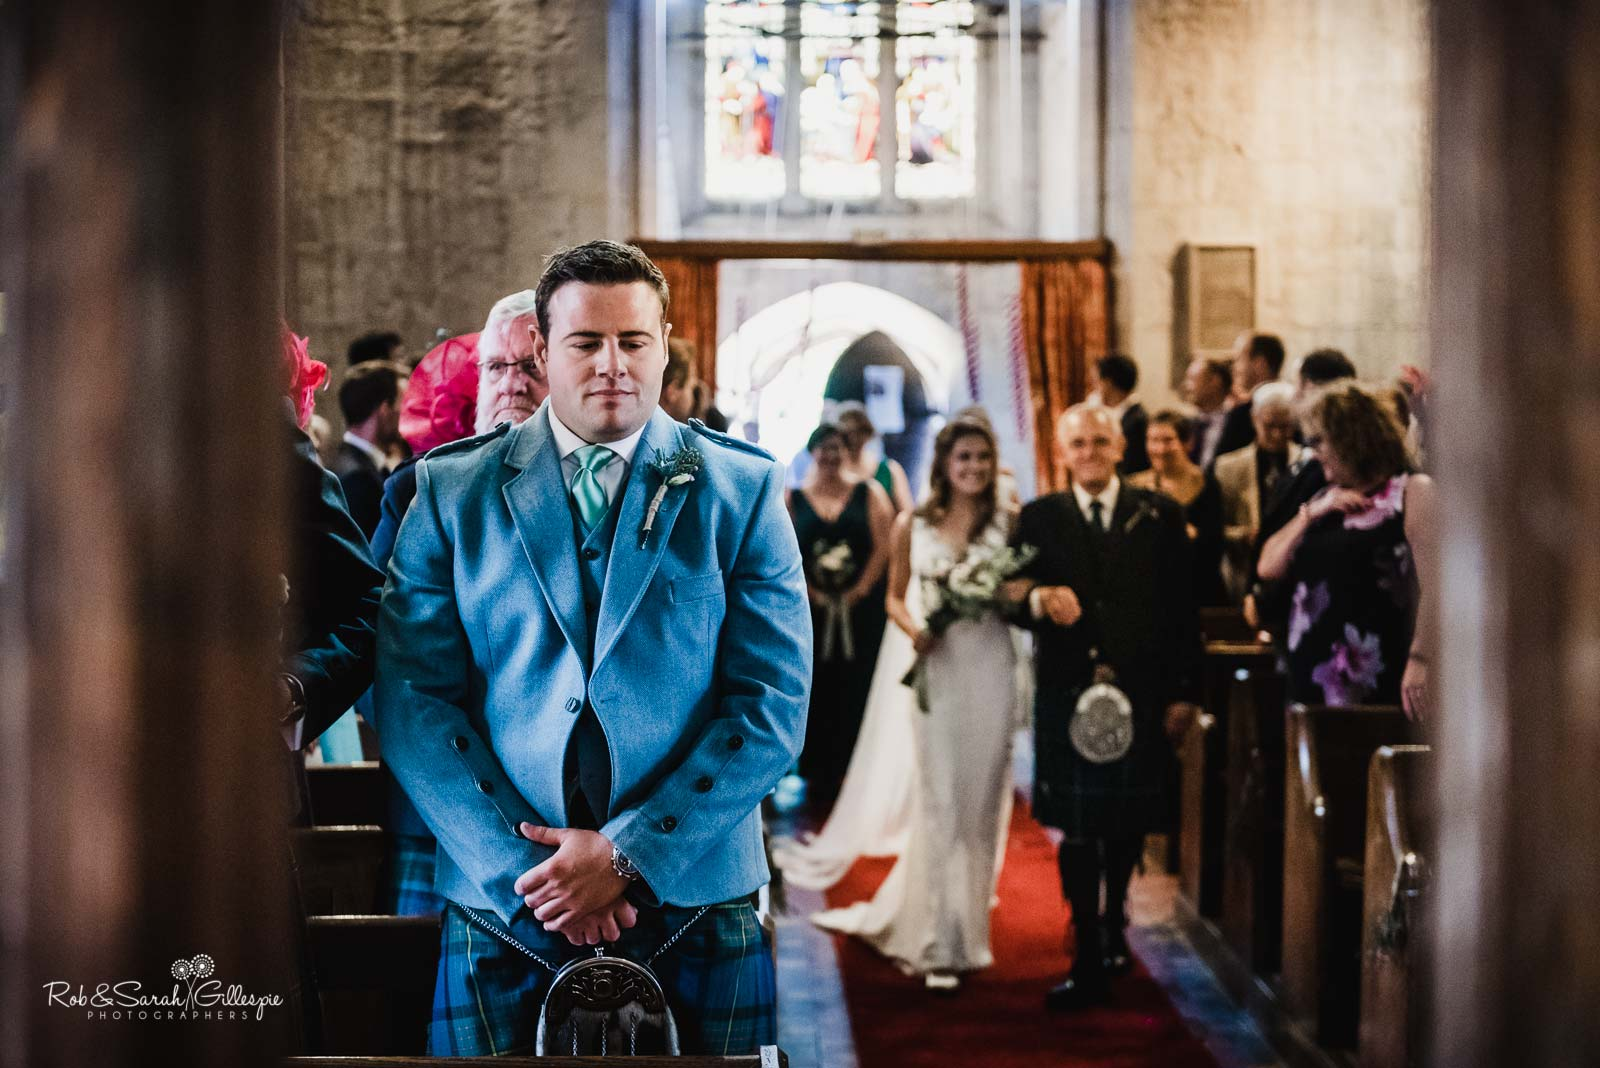 Groom waits for bride at end of aisle at St Giles church Packwood